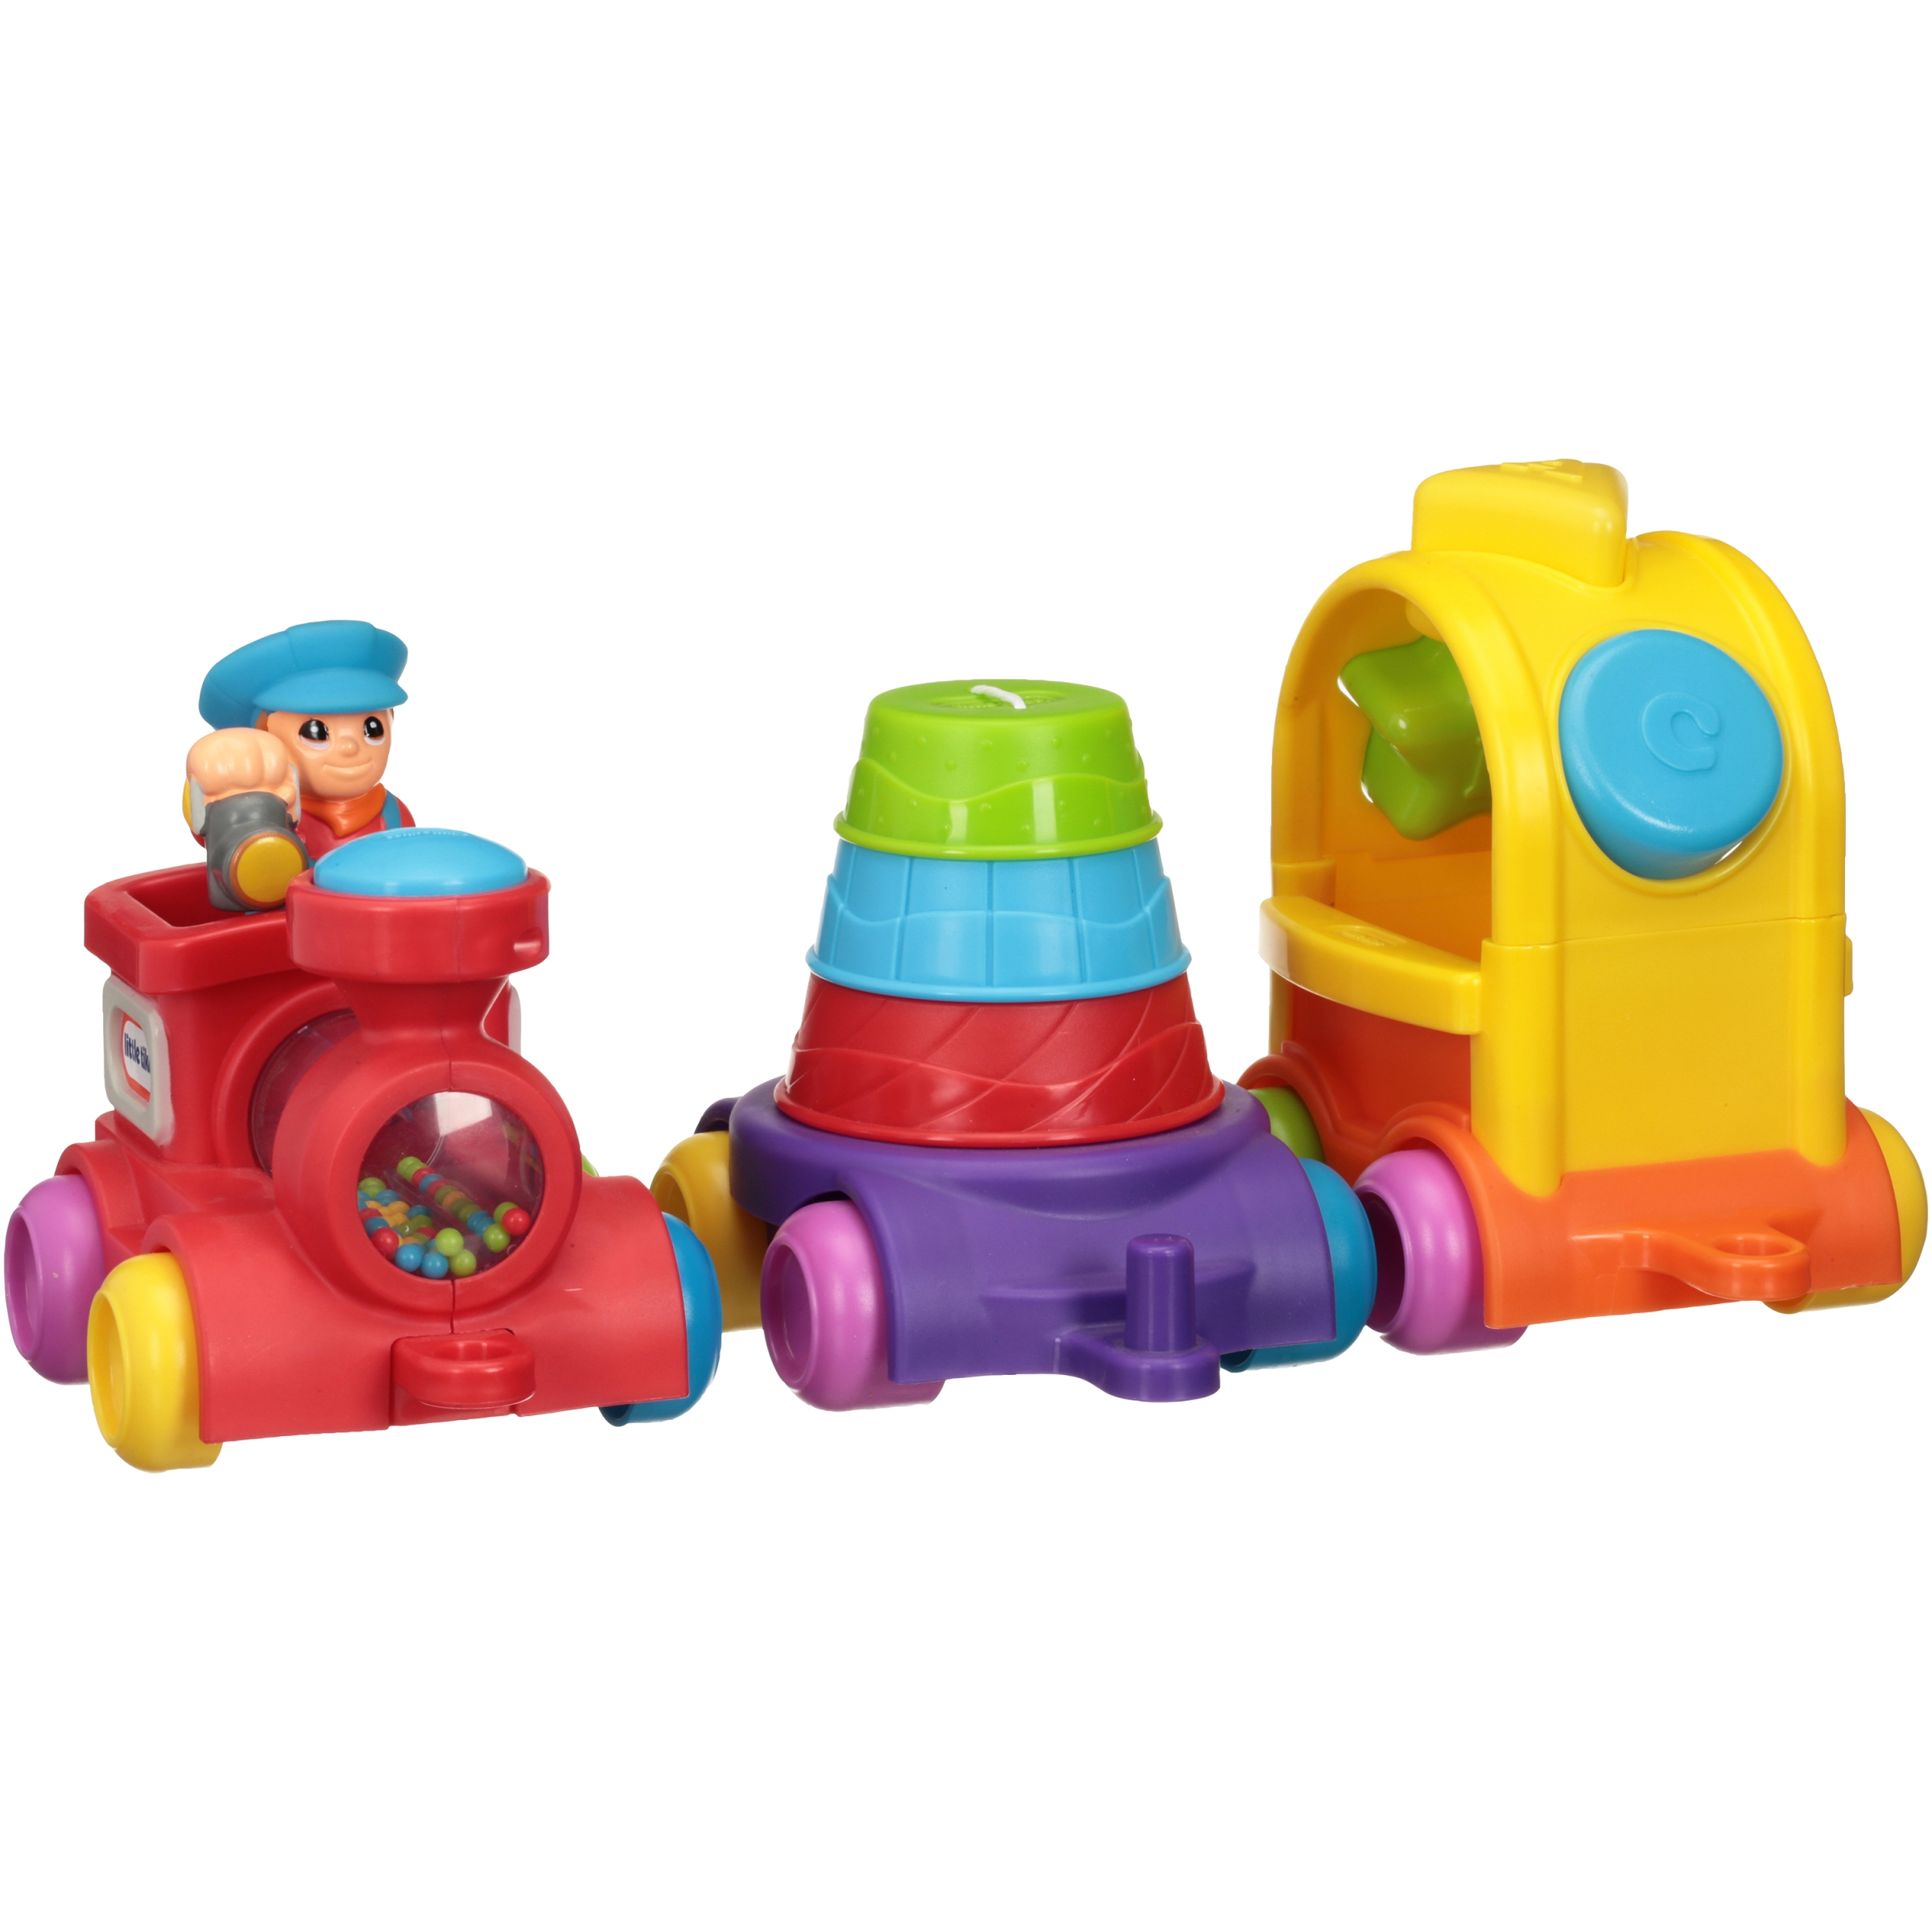 Little Tikes® 3-in-1 Sort & Stack Train